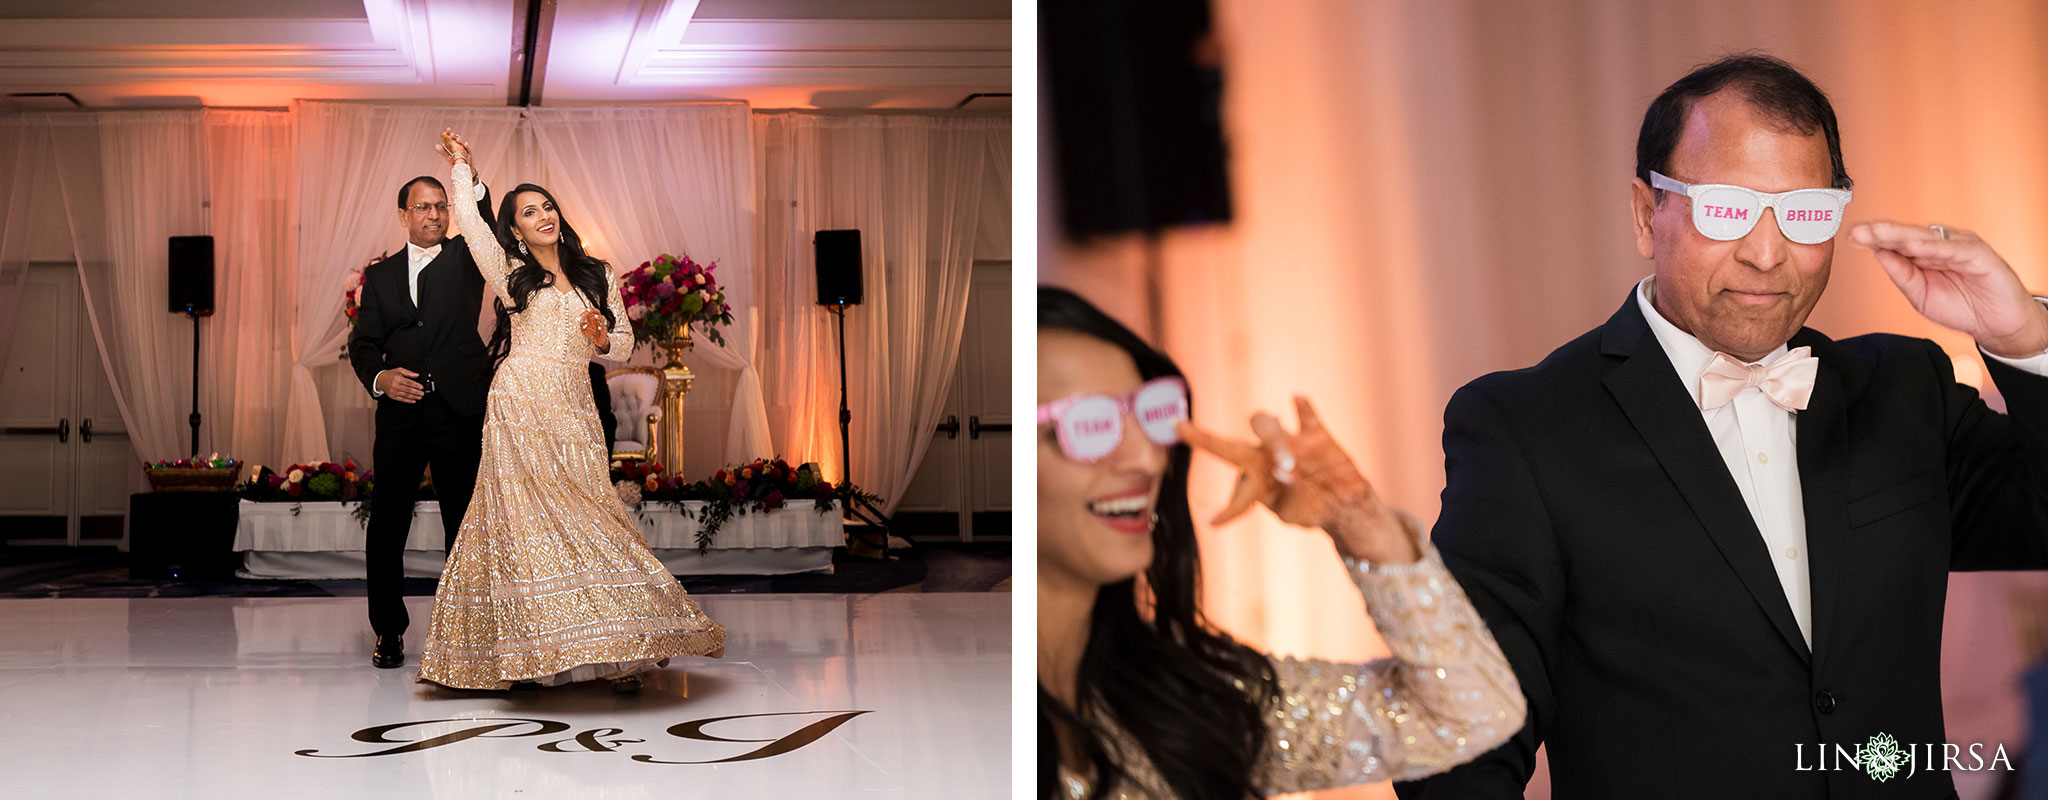 54 newport beach marriott hotel indian wedding reception photography